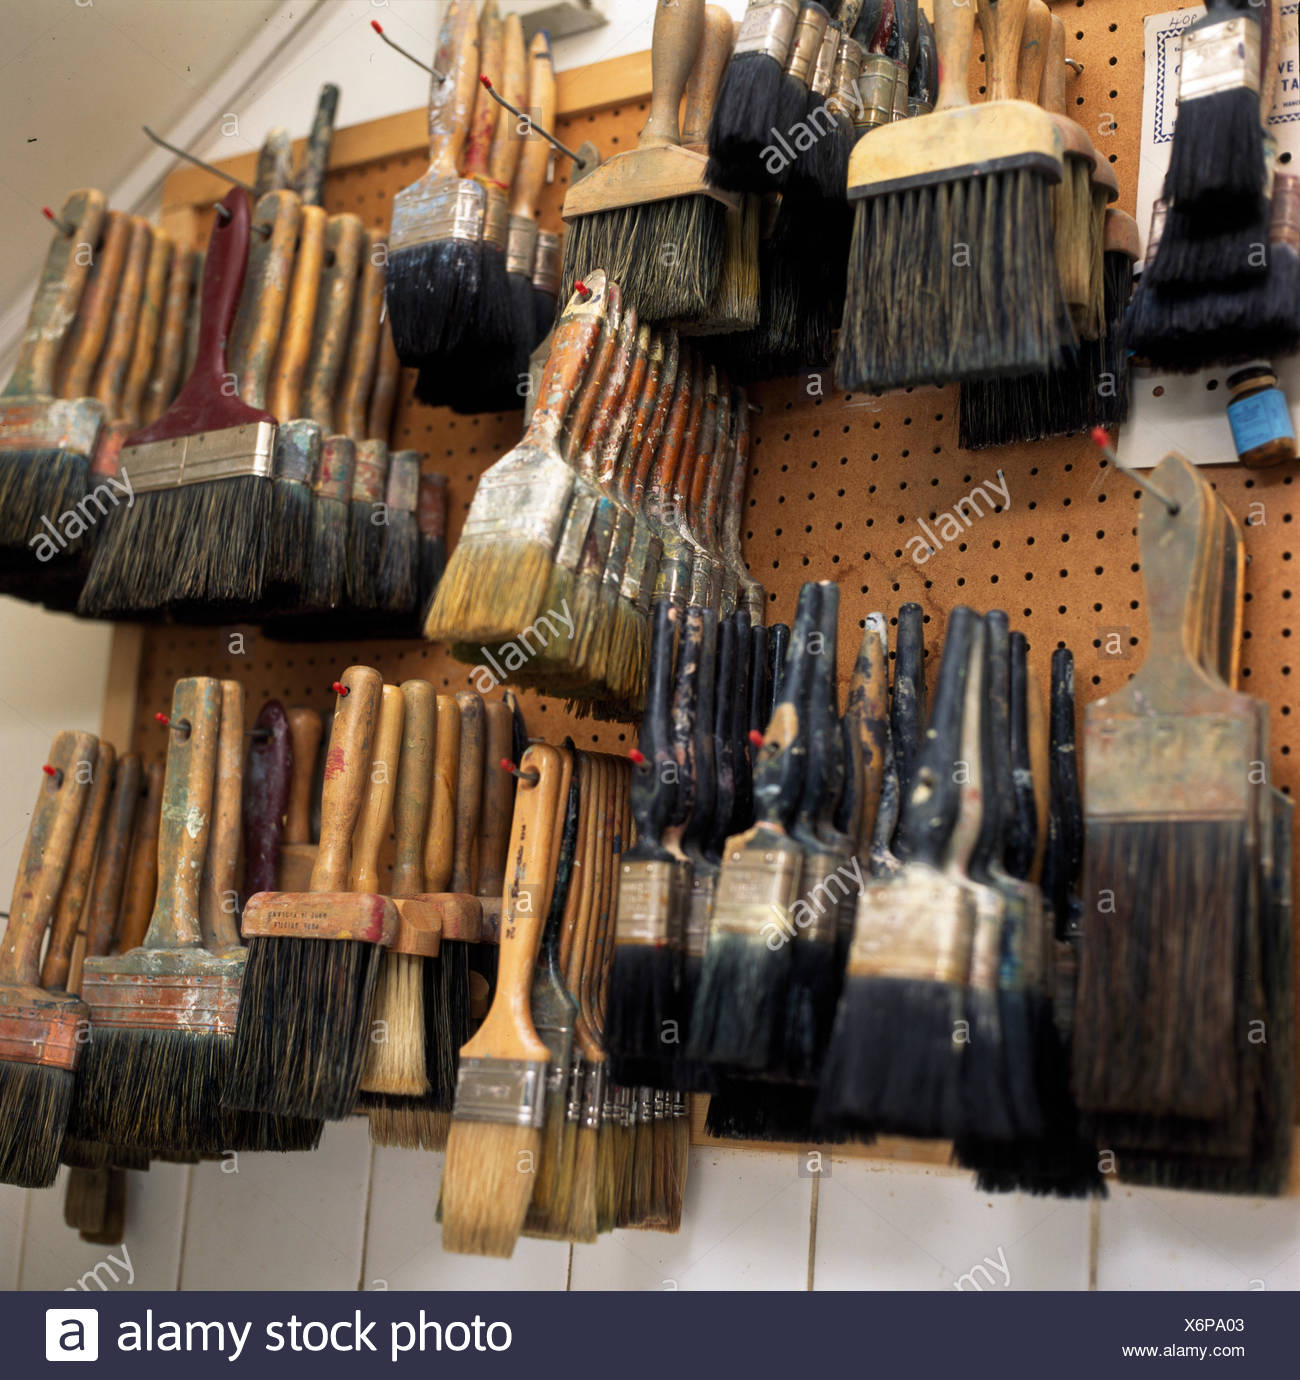 Paint brushes stored on pegboard in shed - Stock Image